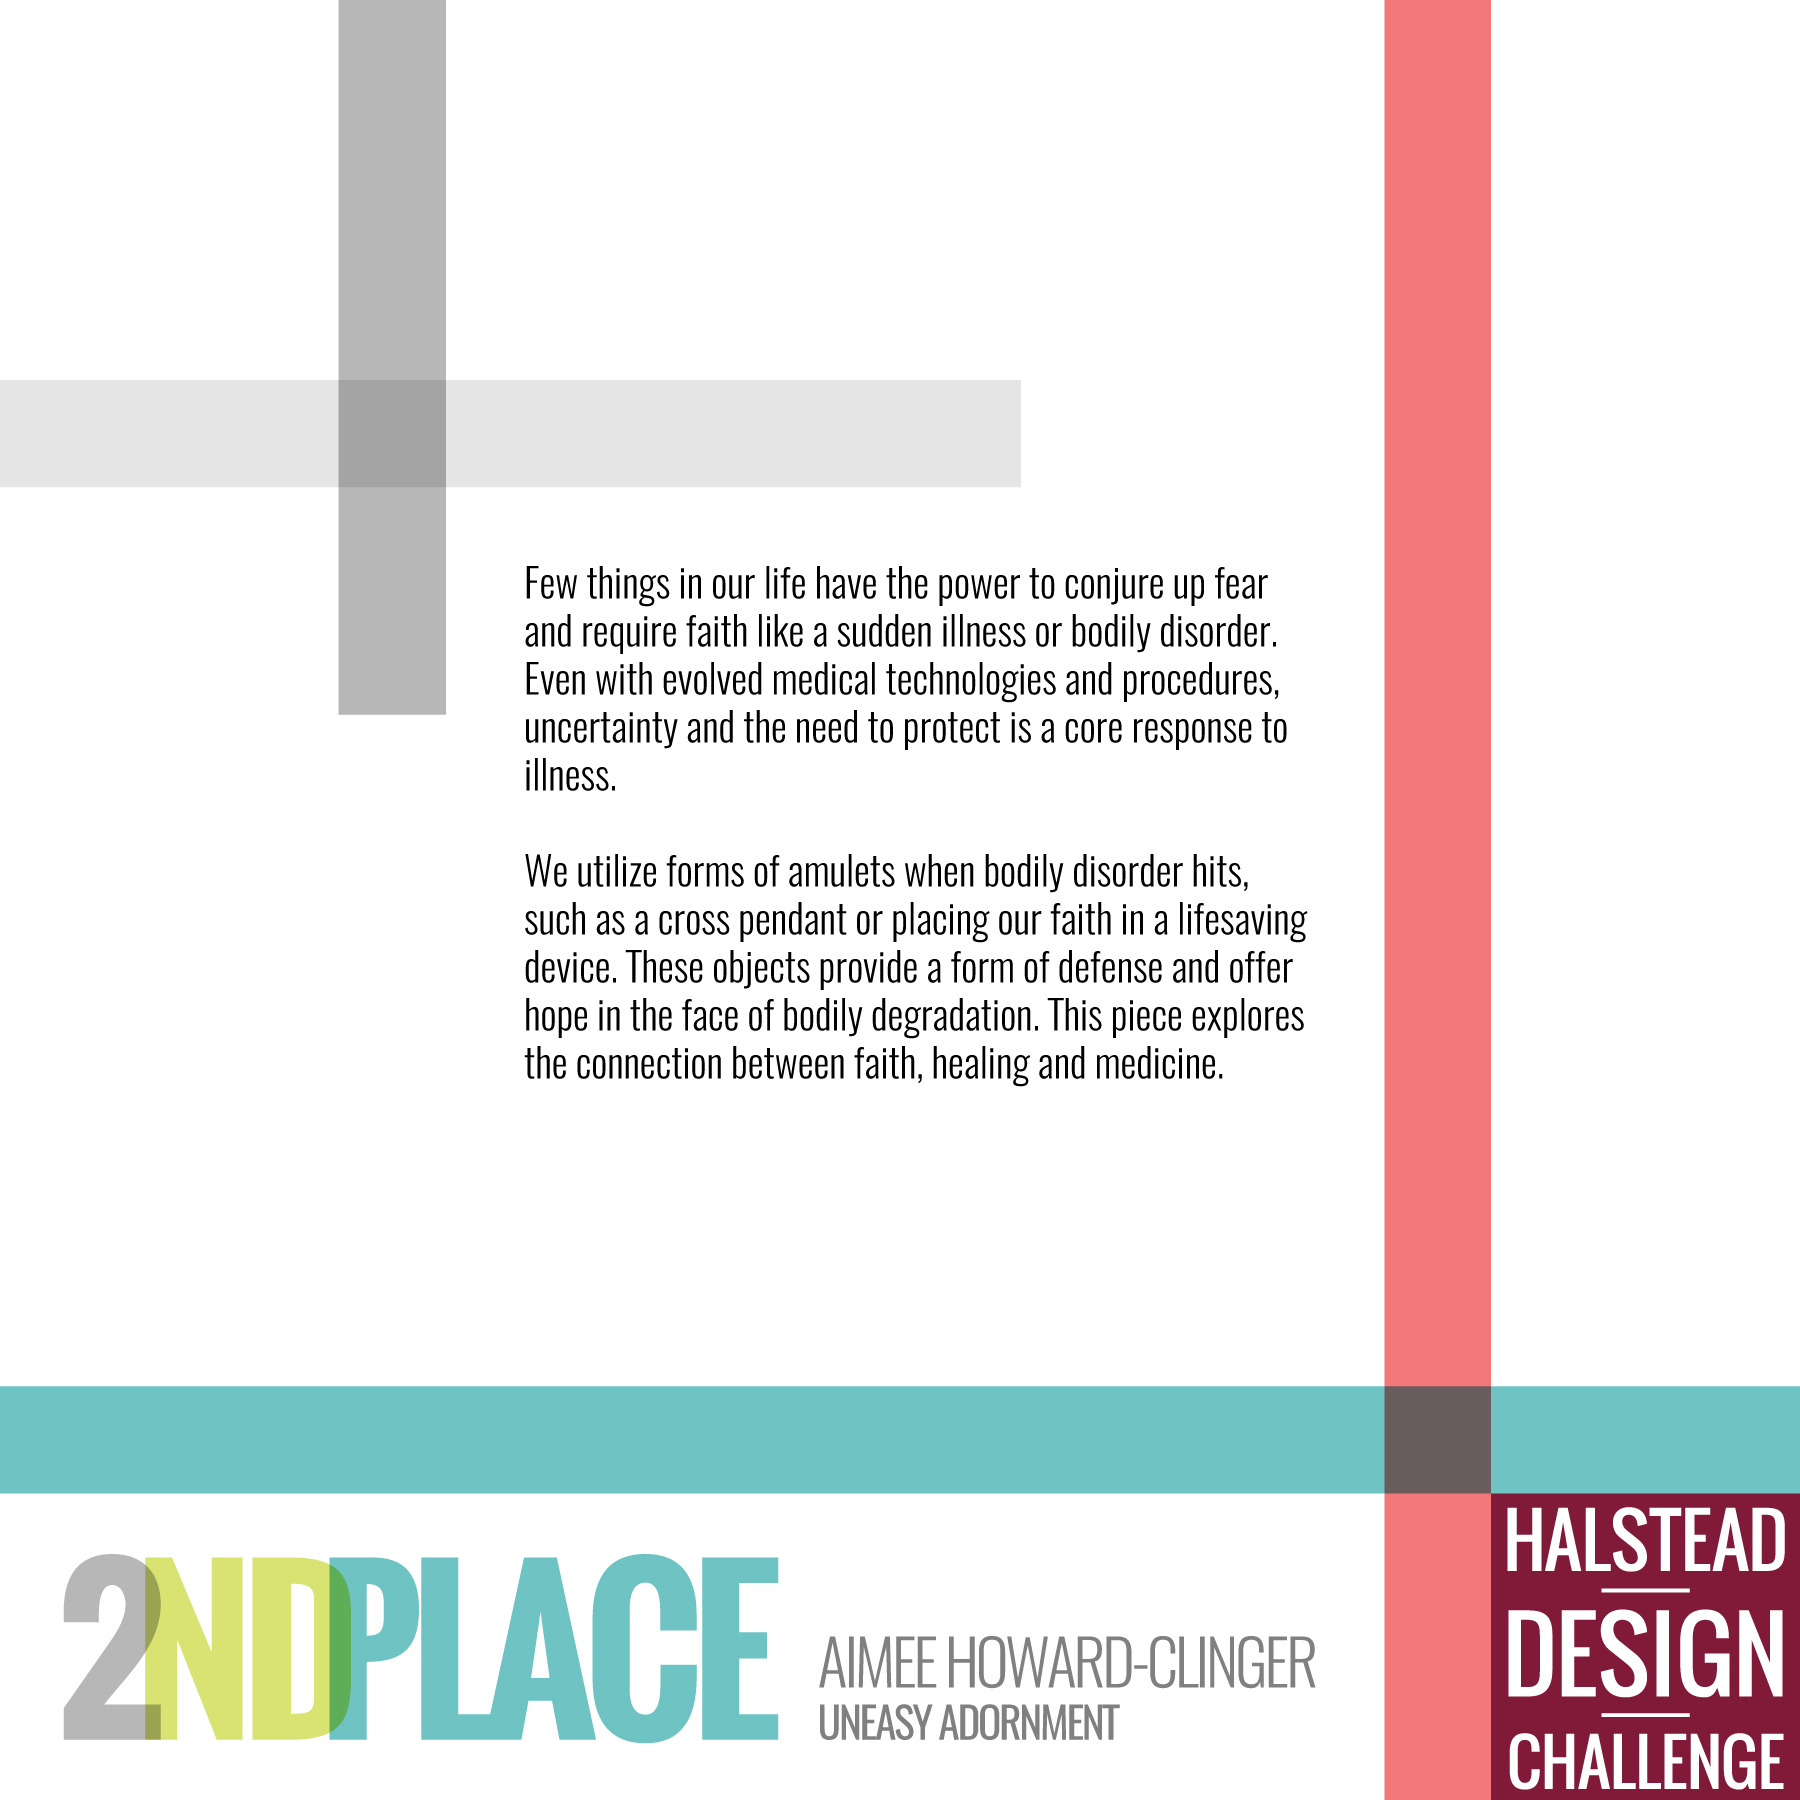 HDC 2020 2nd Place Aimee Howard-Clinger Letter to the Wearer